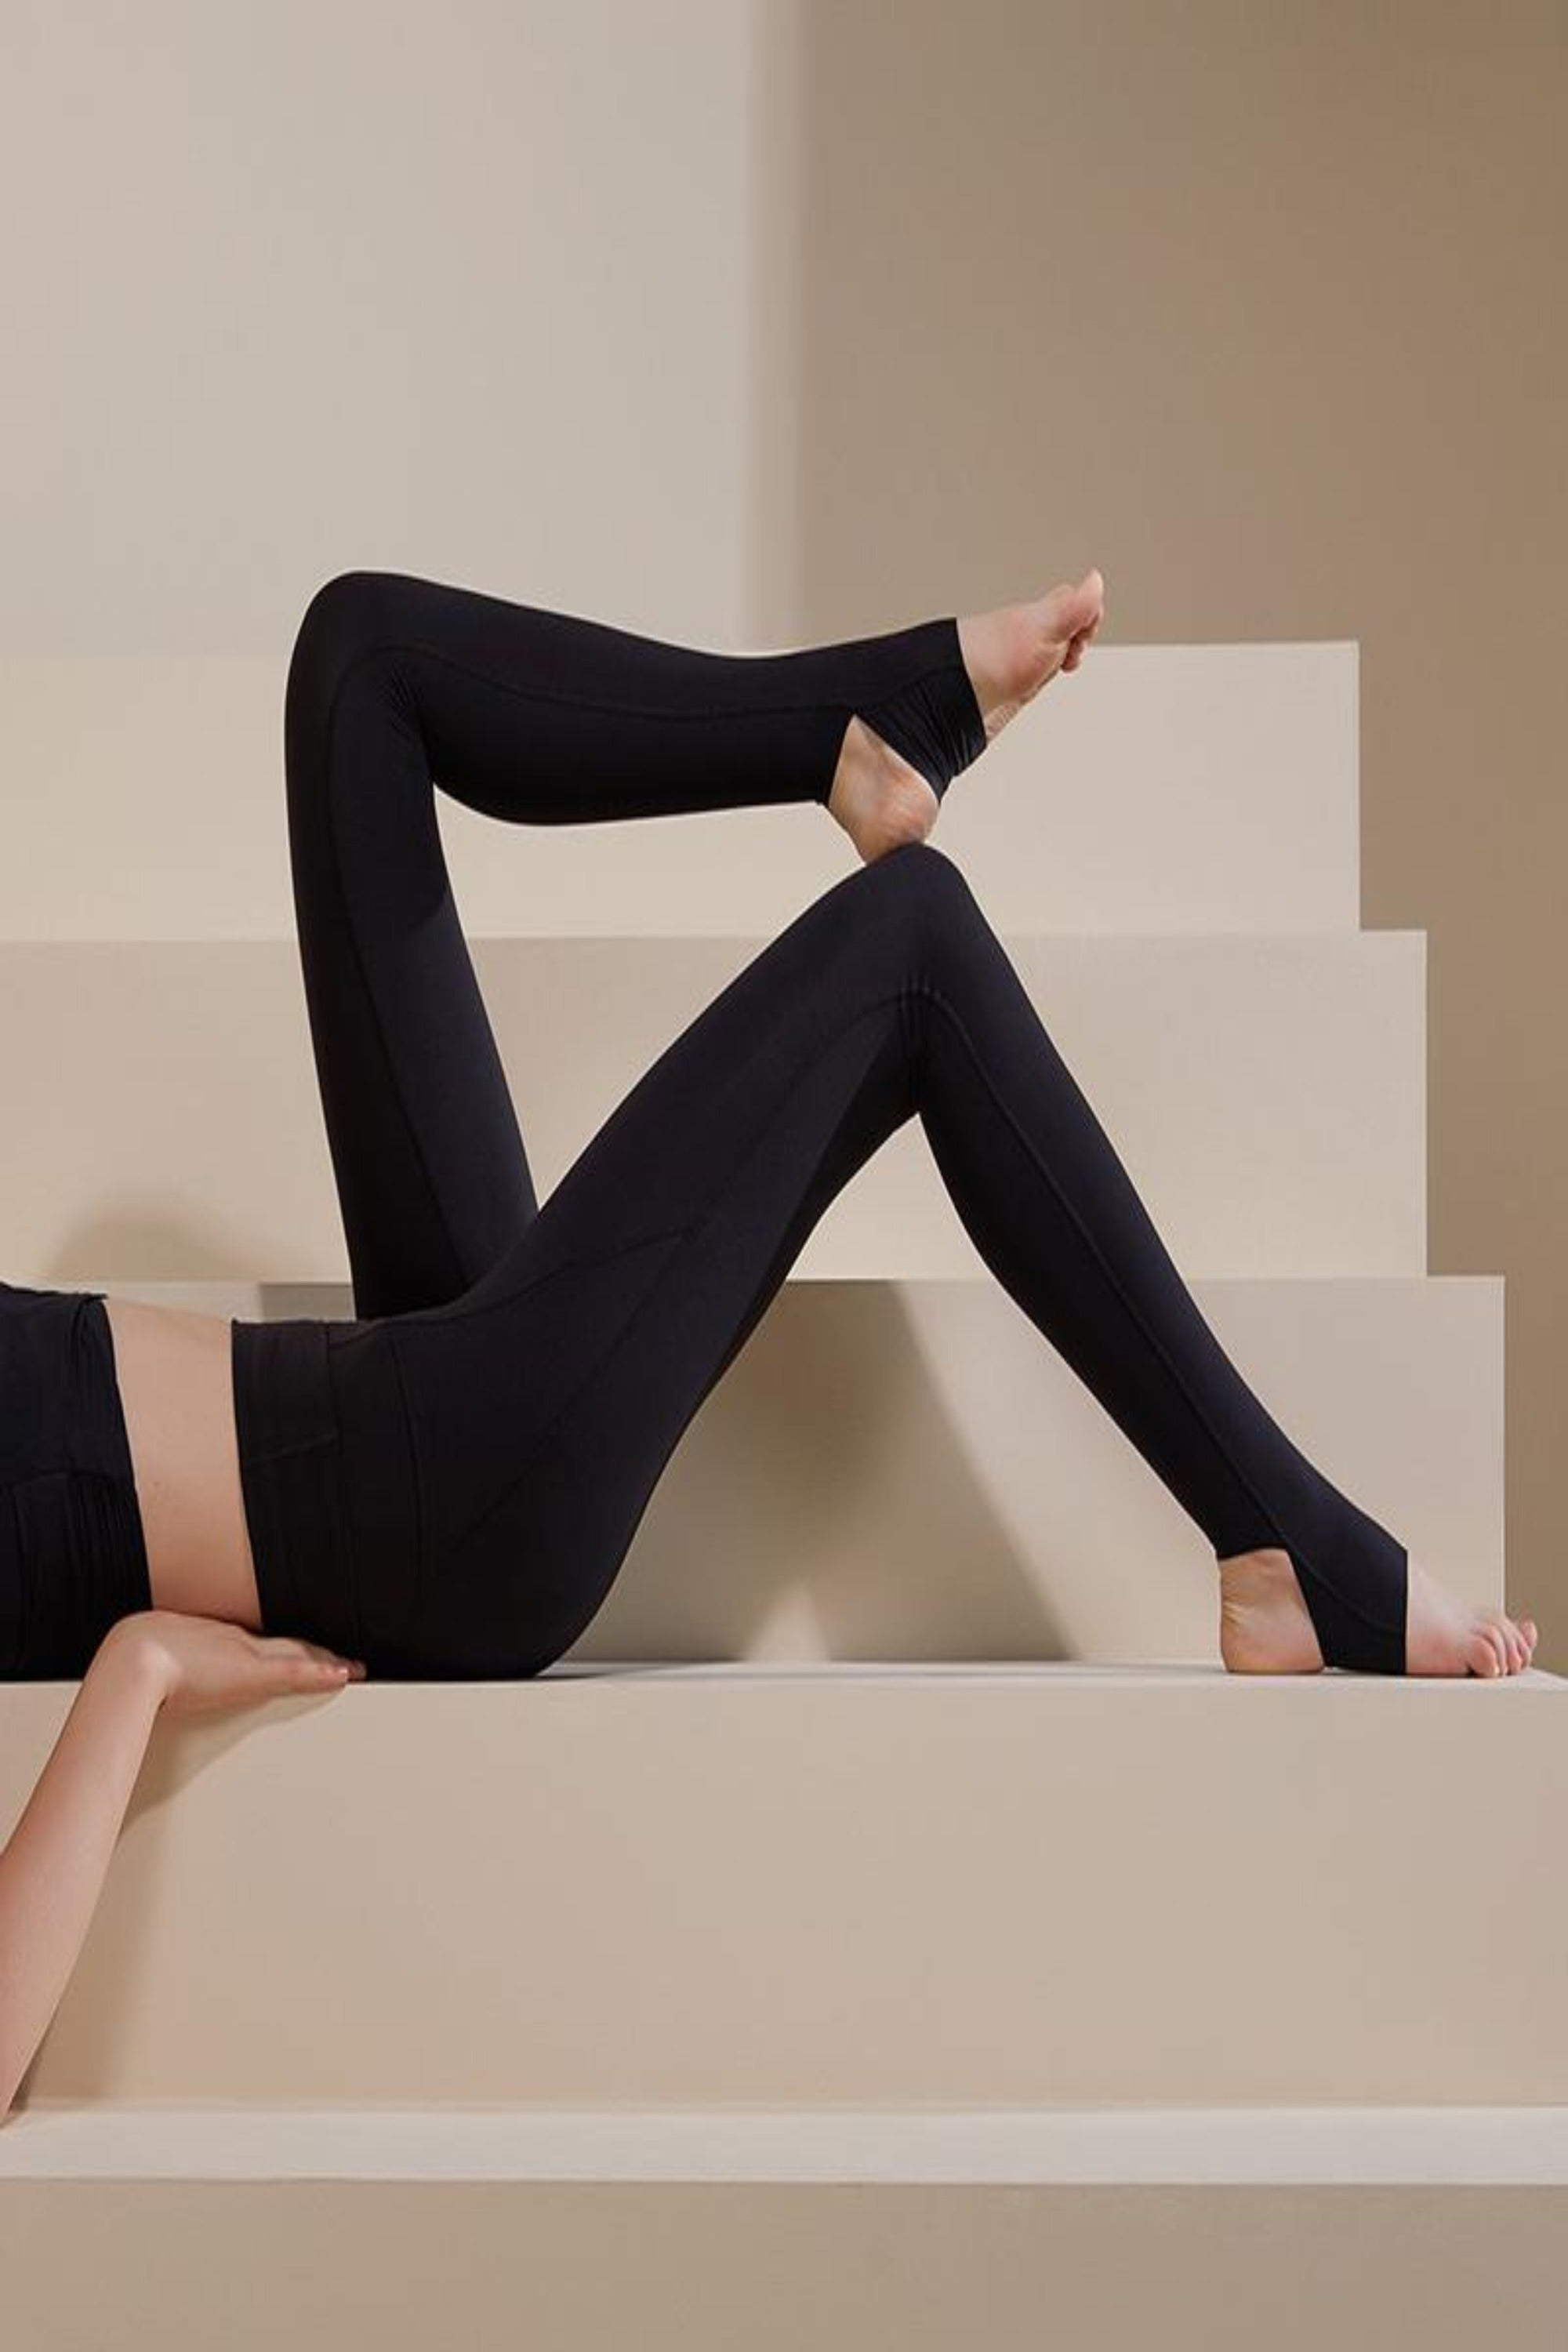 NEIWAI ACTIVE x Yuan Yuan Tan 2-in-1 Ultra Soft Stirrup Leggings